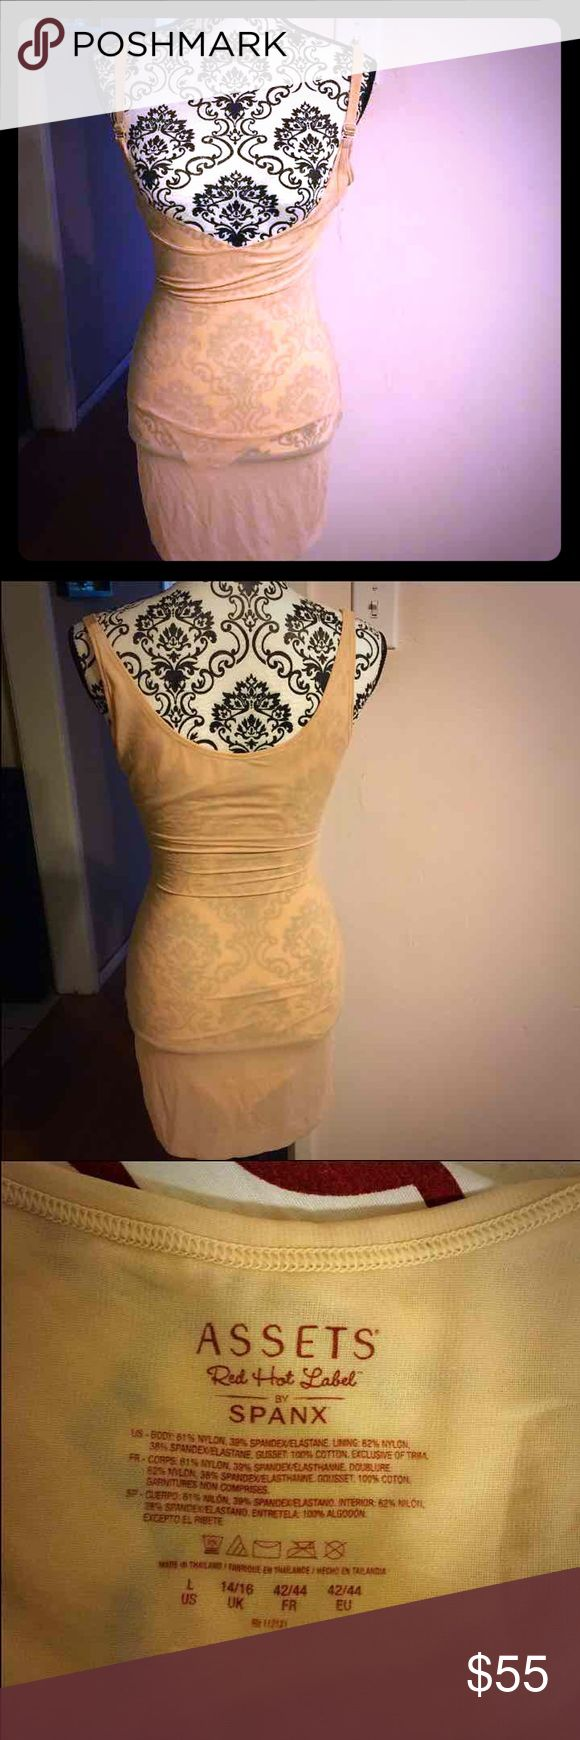 SPANX SLIP Used once for a wedding, SPANX size L SPANX Intimates & Sleepwear Chemises & Slips